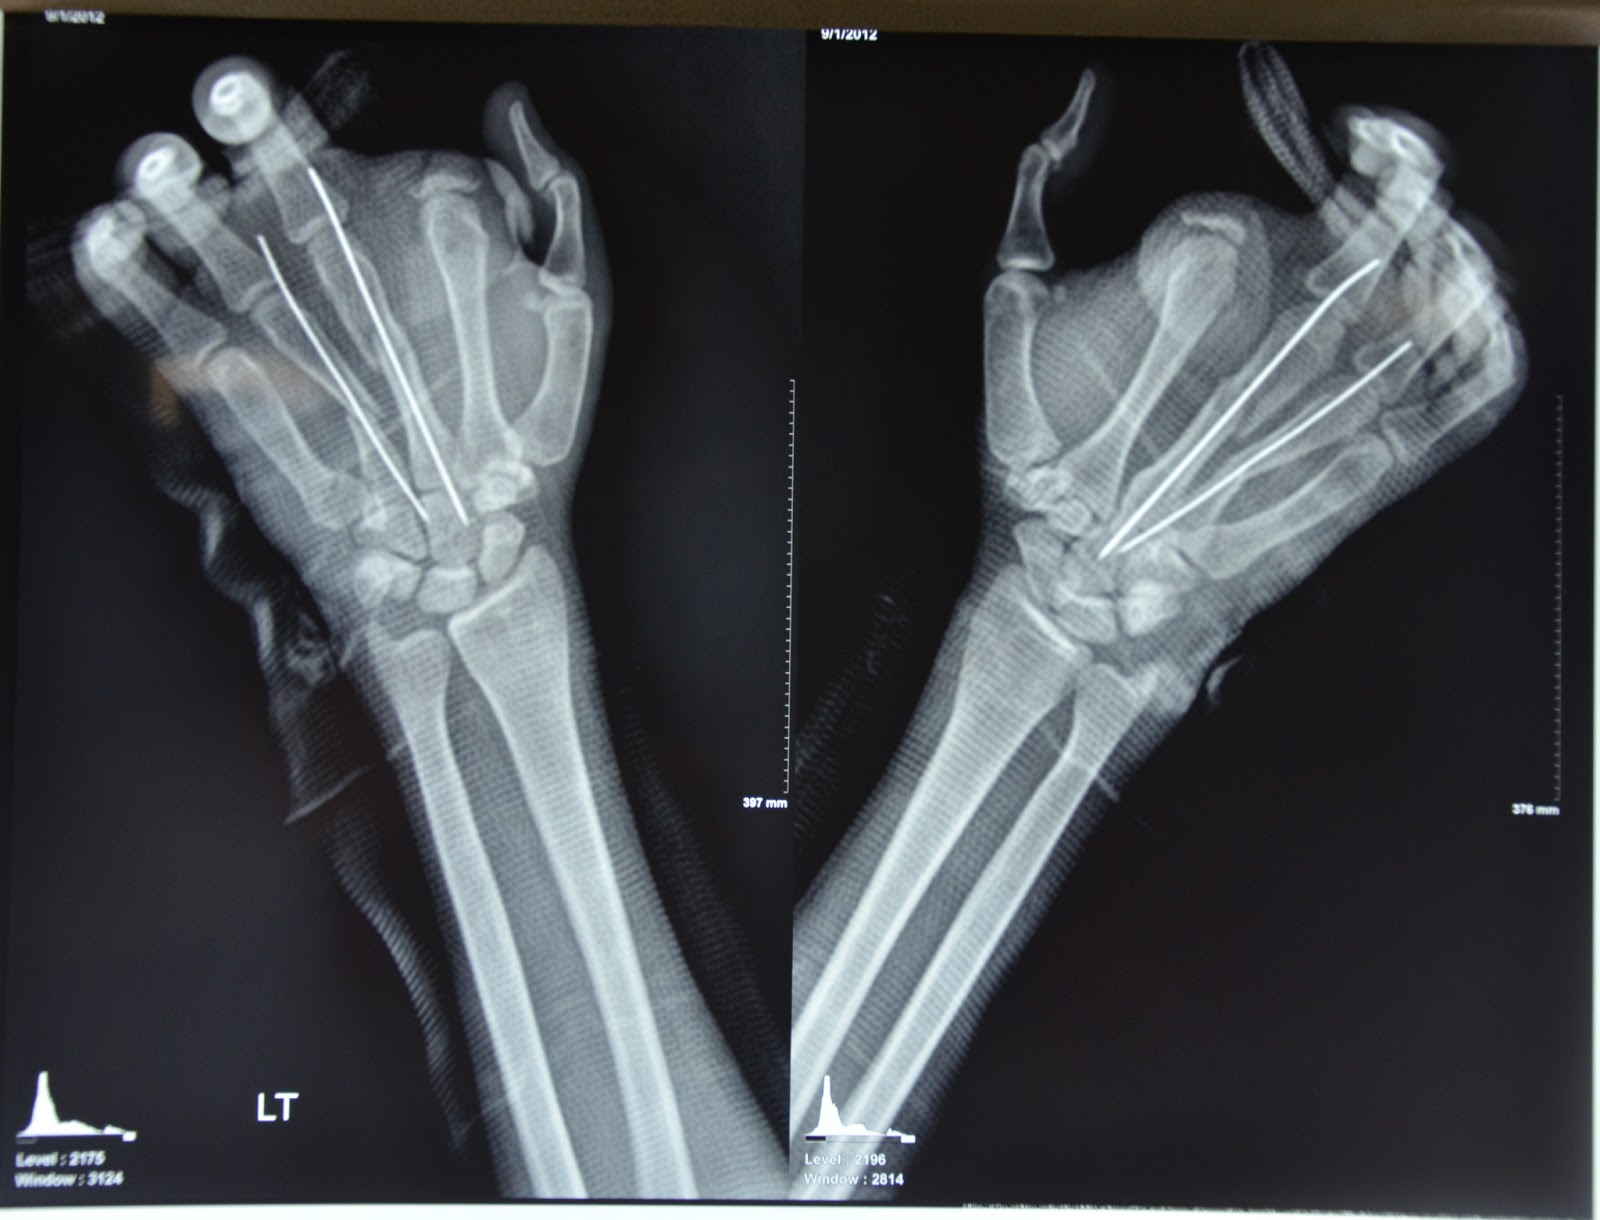 MAJOR CRUSH INJURY LEFT HAND WITH MULTIPLE METACARPAL FRACTURES ...